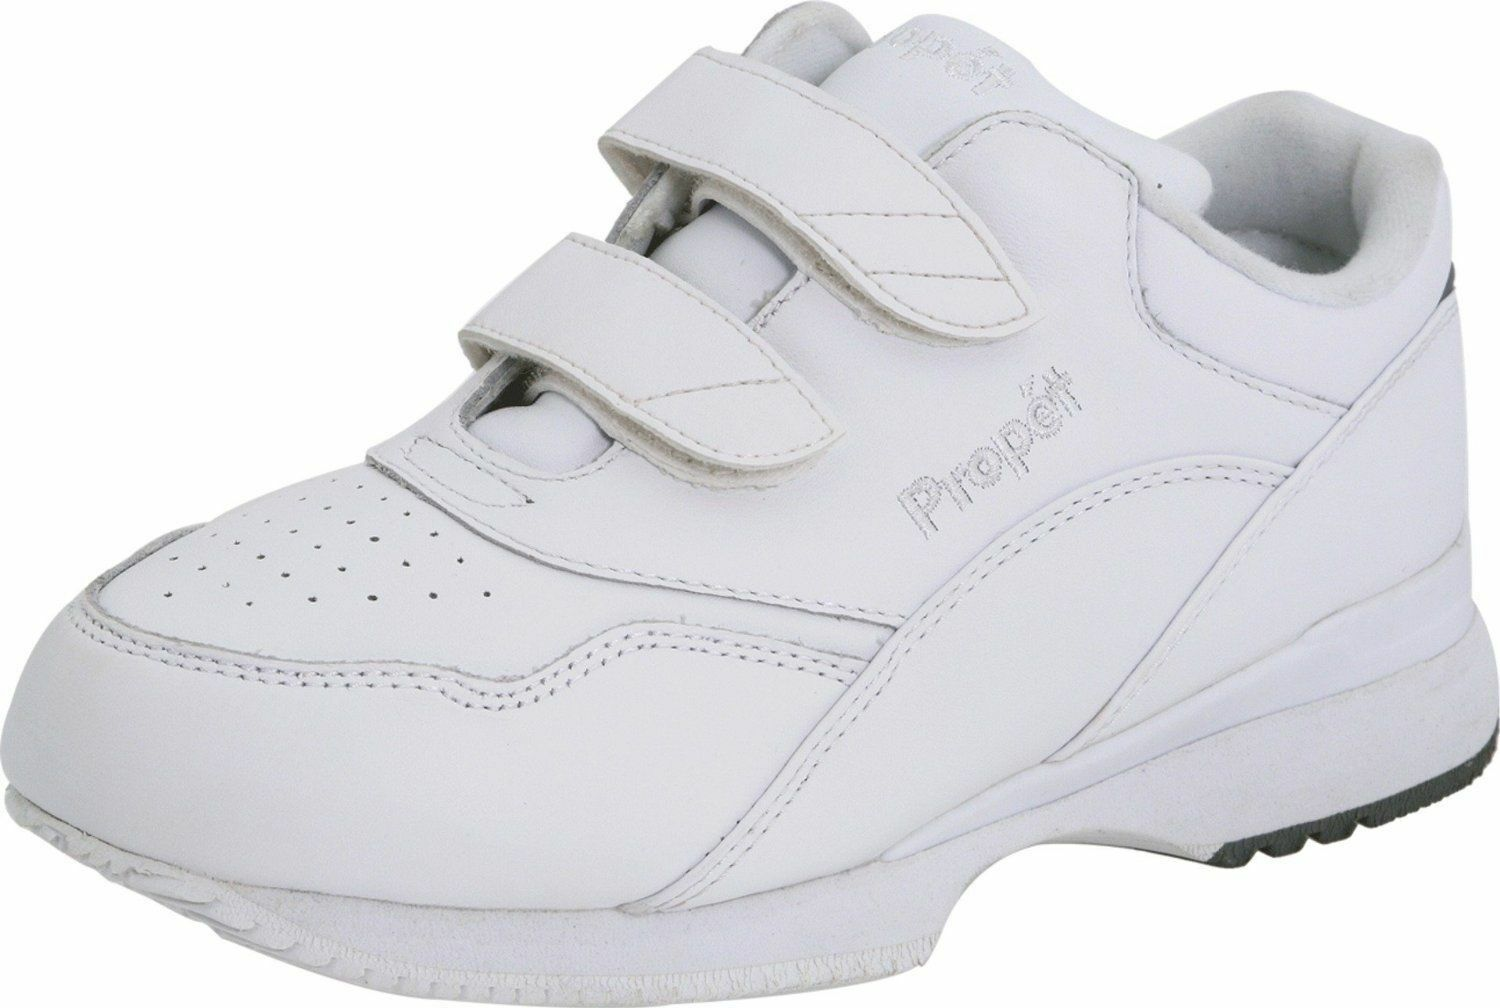 Propet Walker Sneaker Leather Orthopedic Comfort  Chaussures  5 XX(4E)  #34